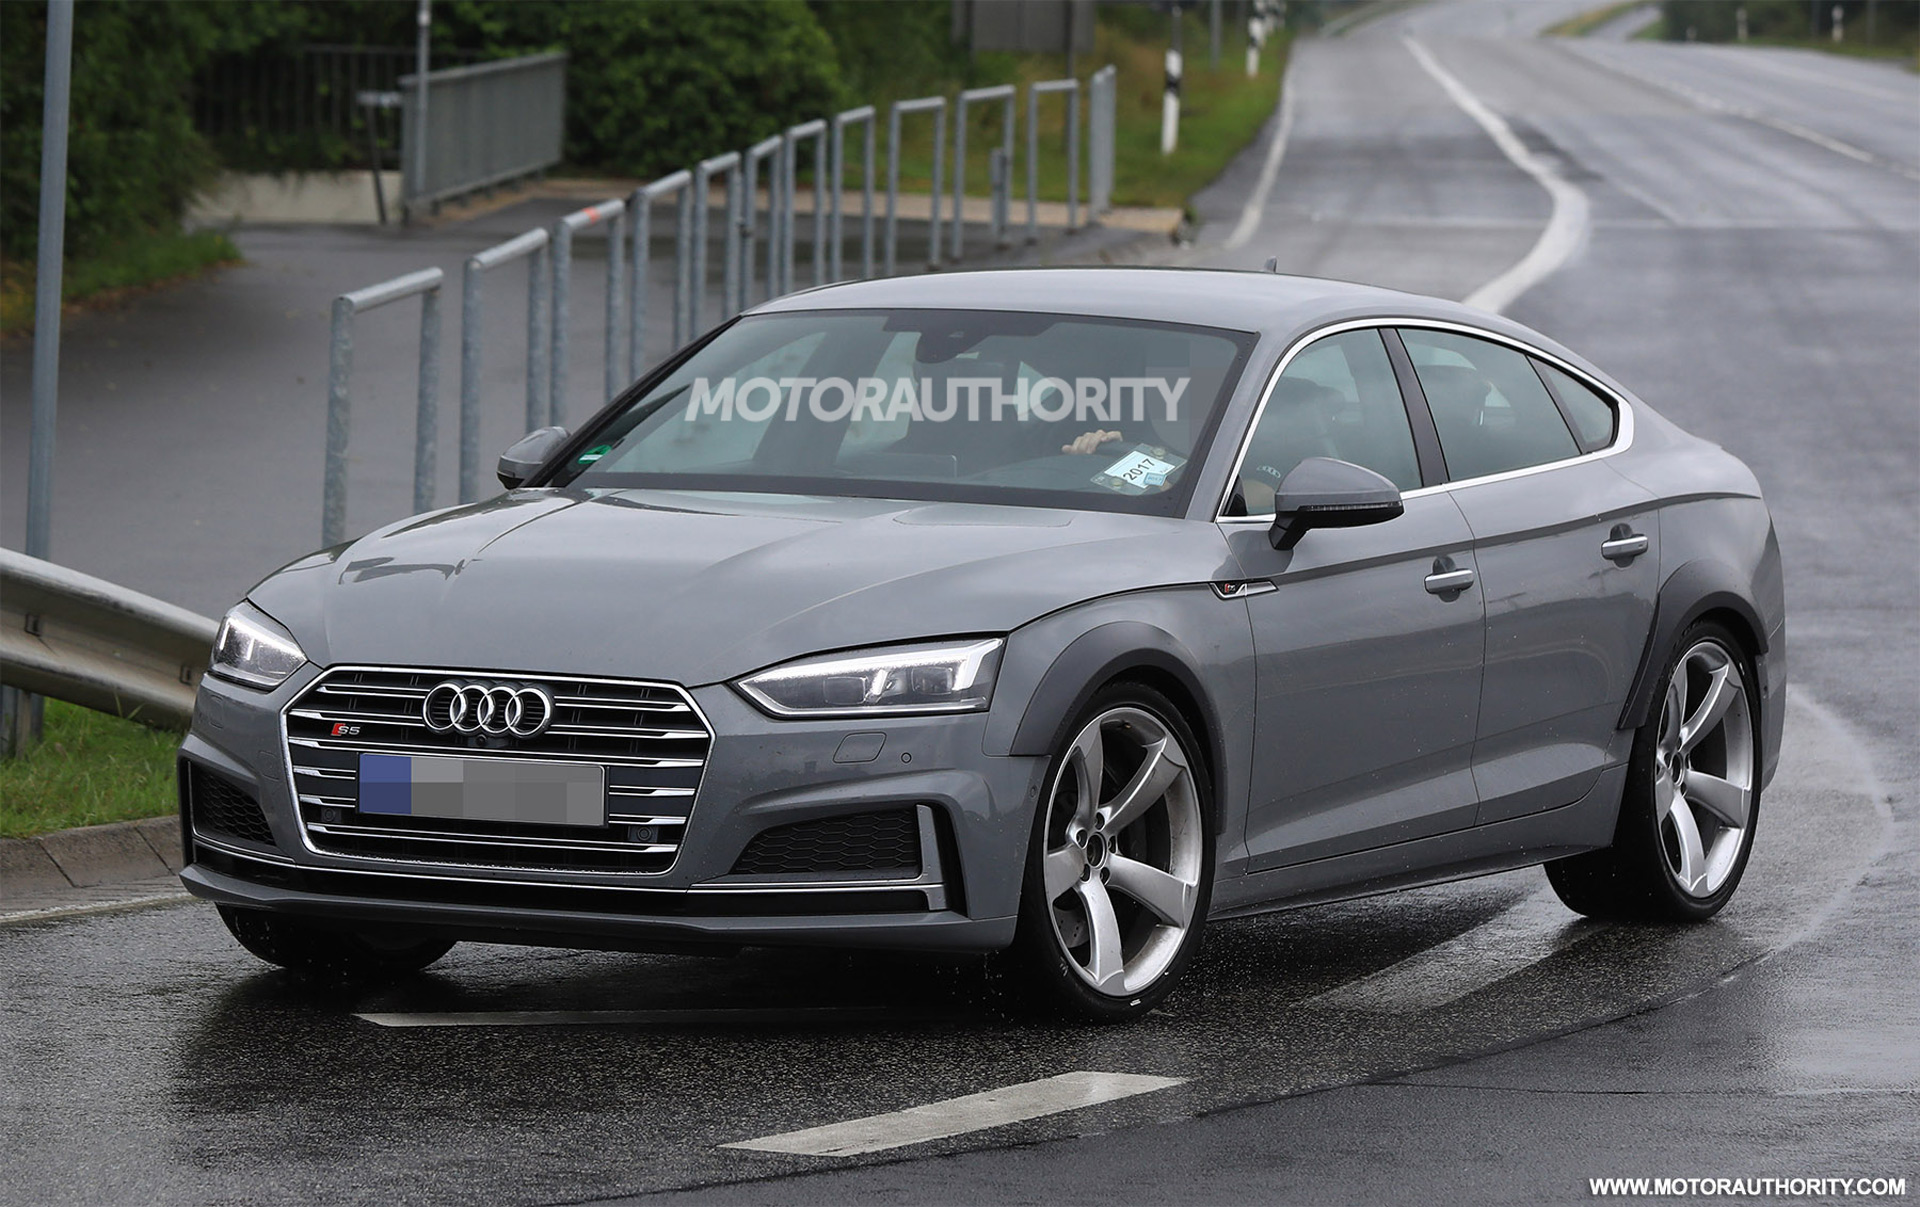 2019 Audi Rs 5 Sportback Spy Shots